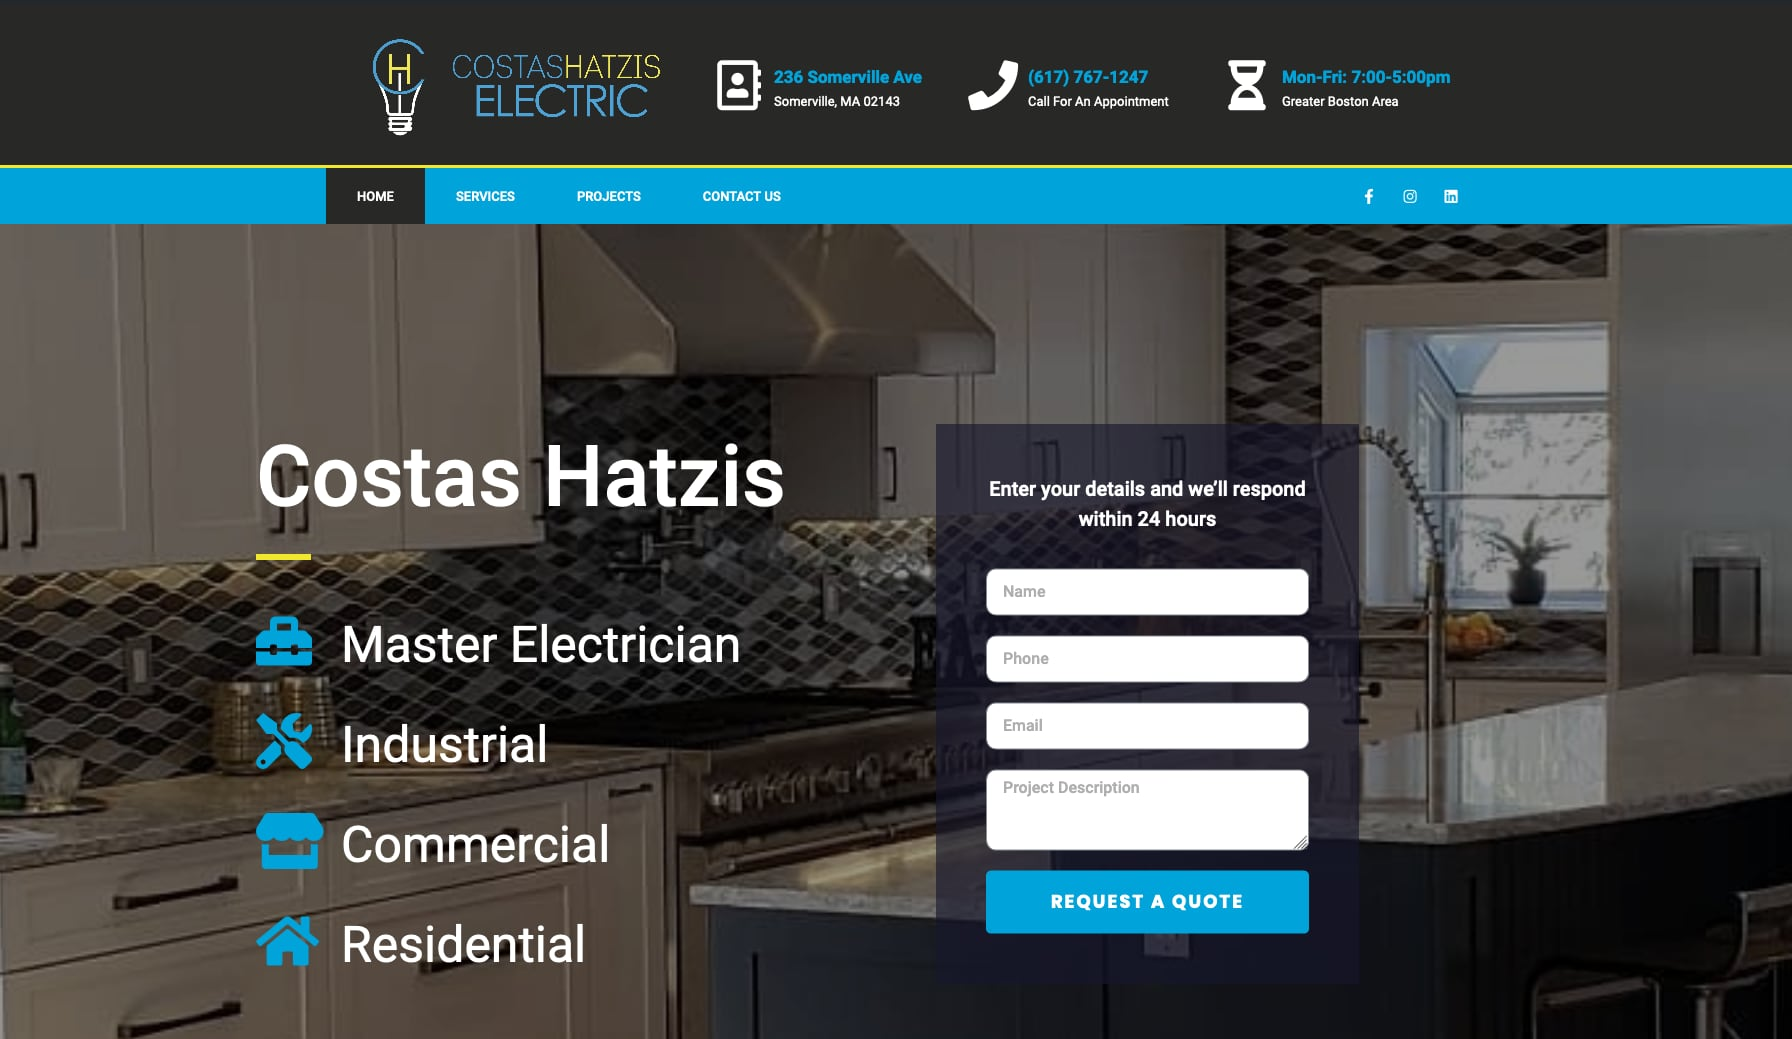 Costas Hatzis Electric